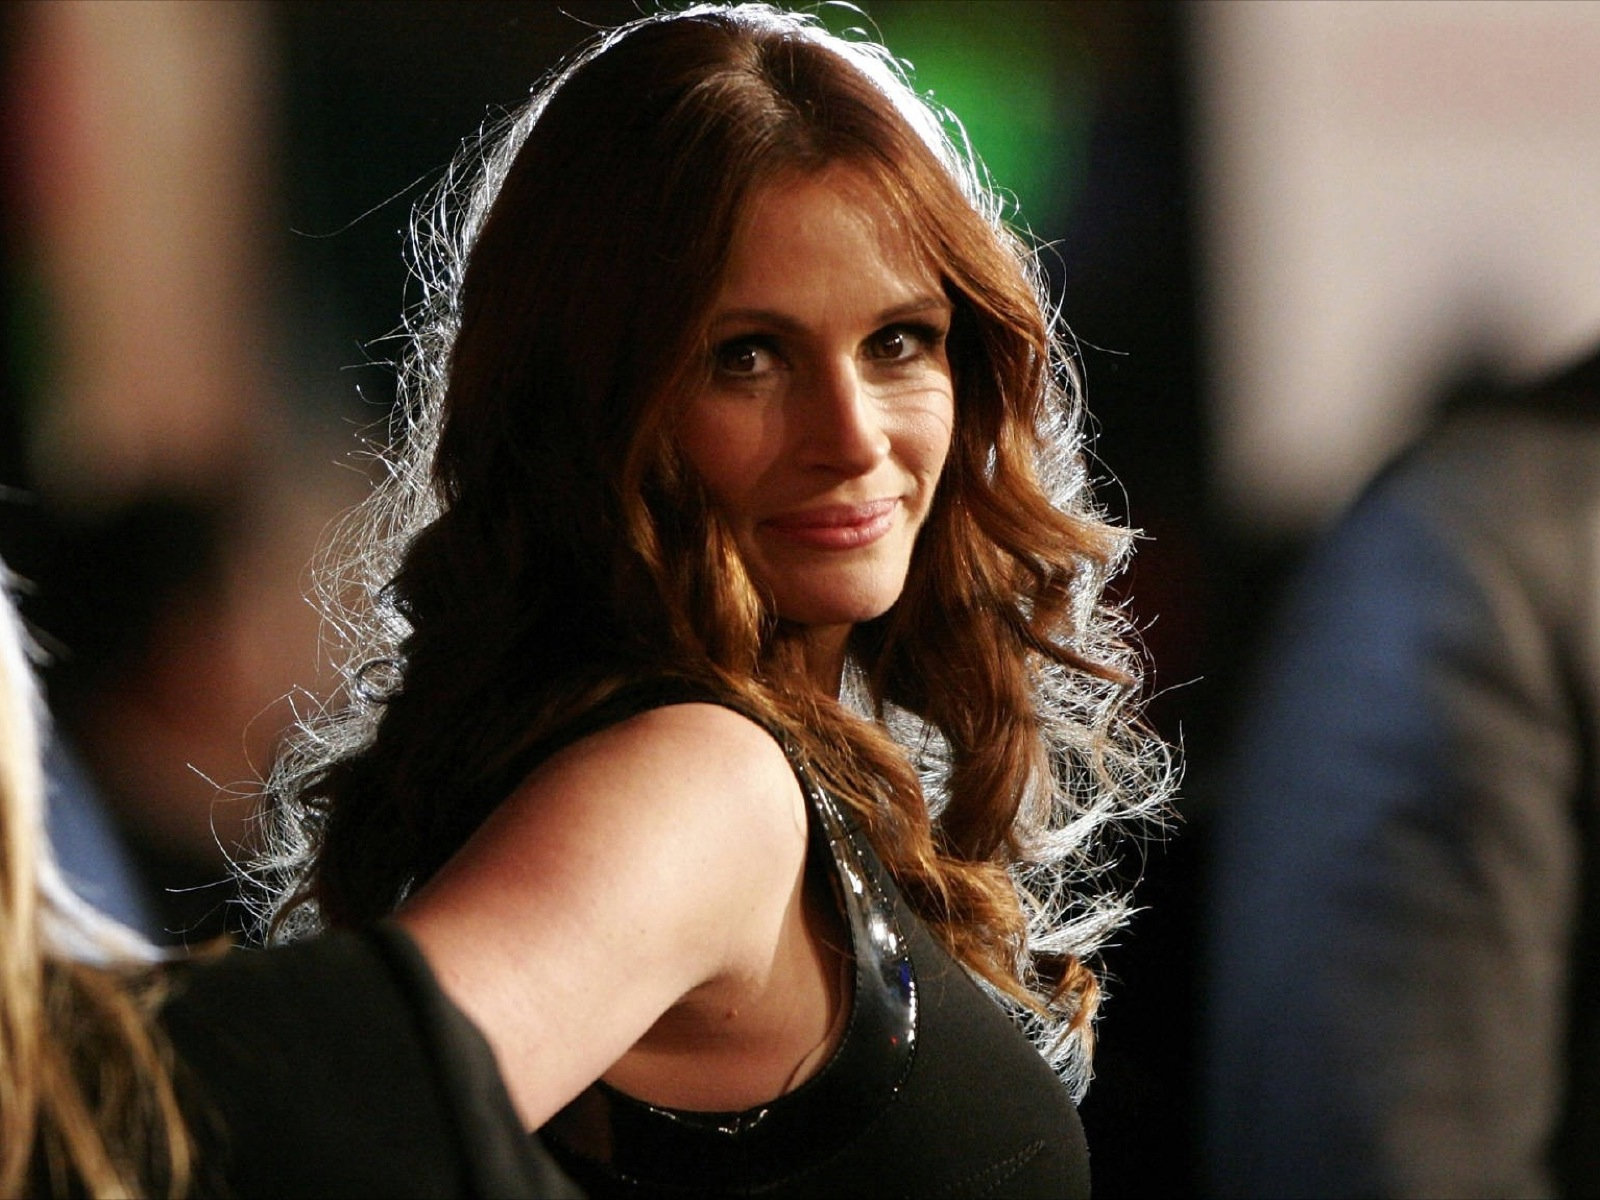 Julia Roberts Wallpapers High Quality | Download Free